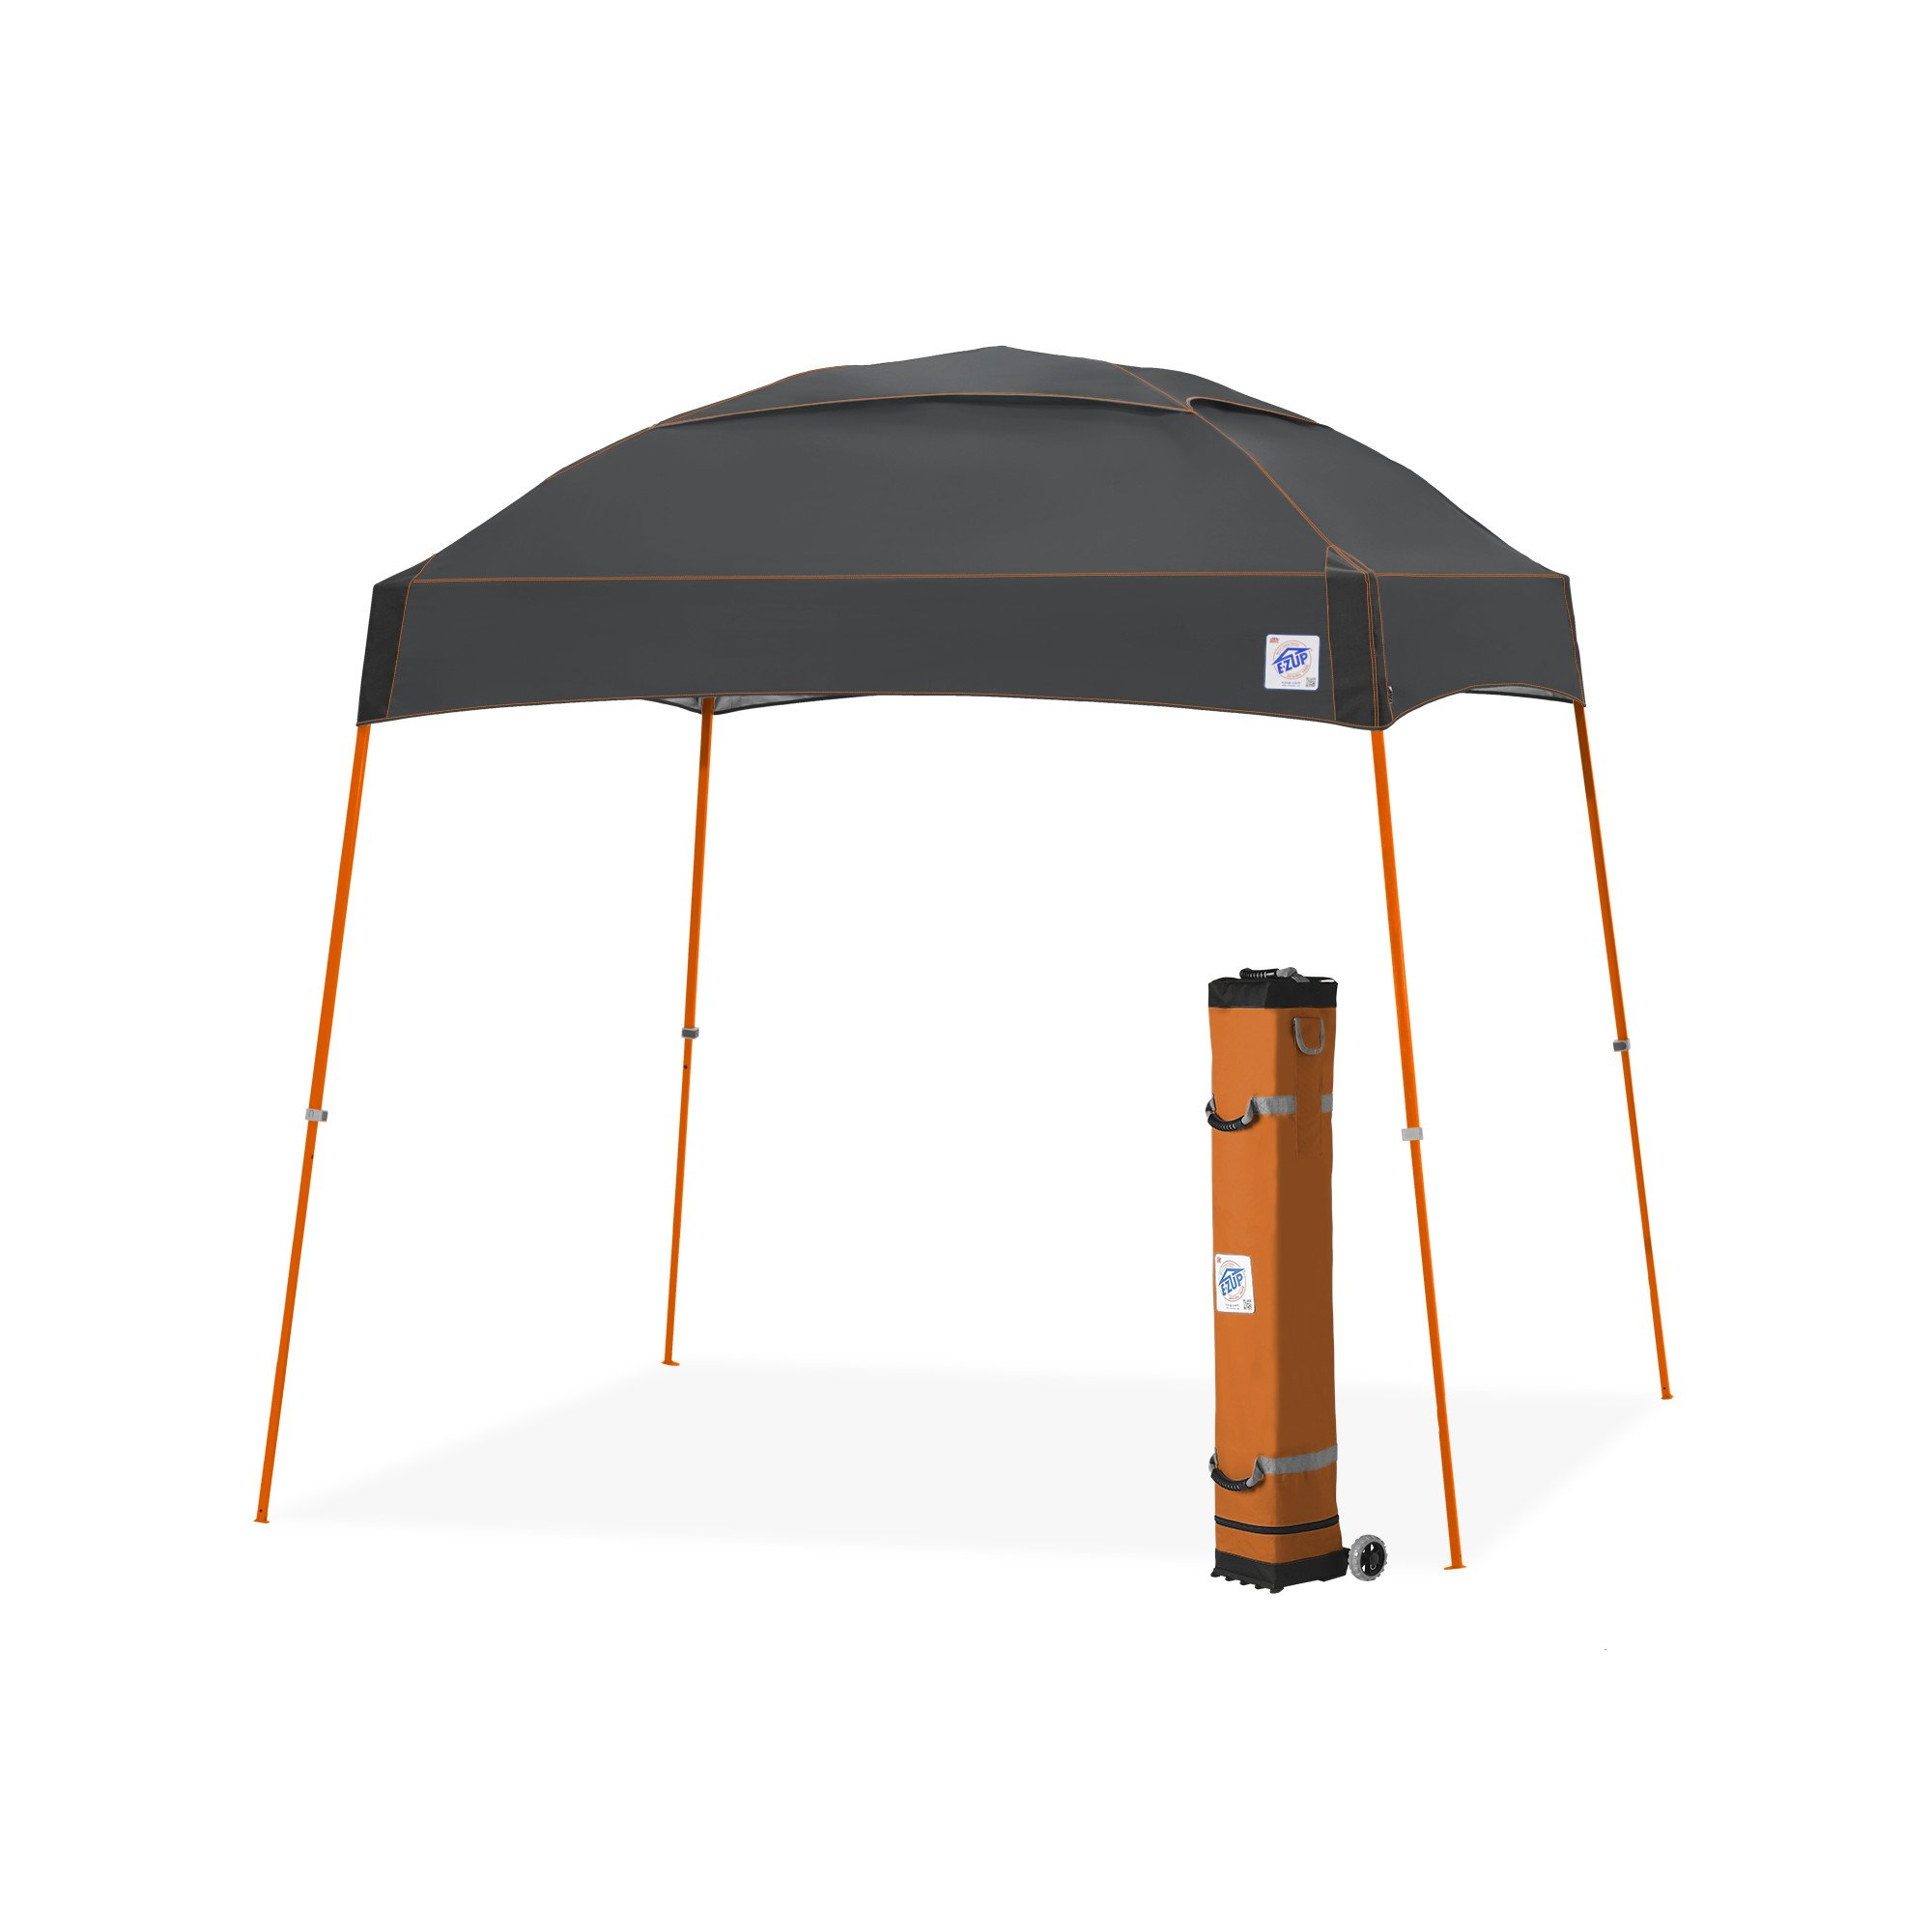 E-Z UP Dome Instant Shelter Canopy, 10 by